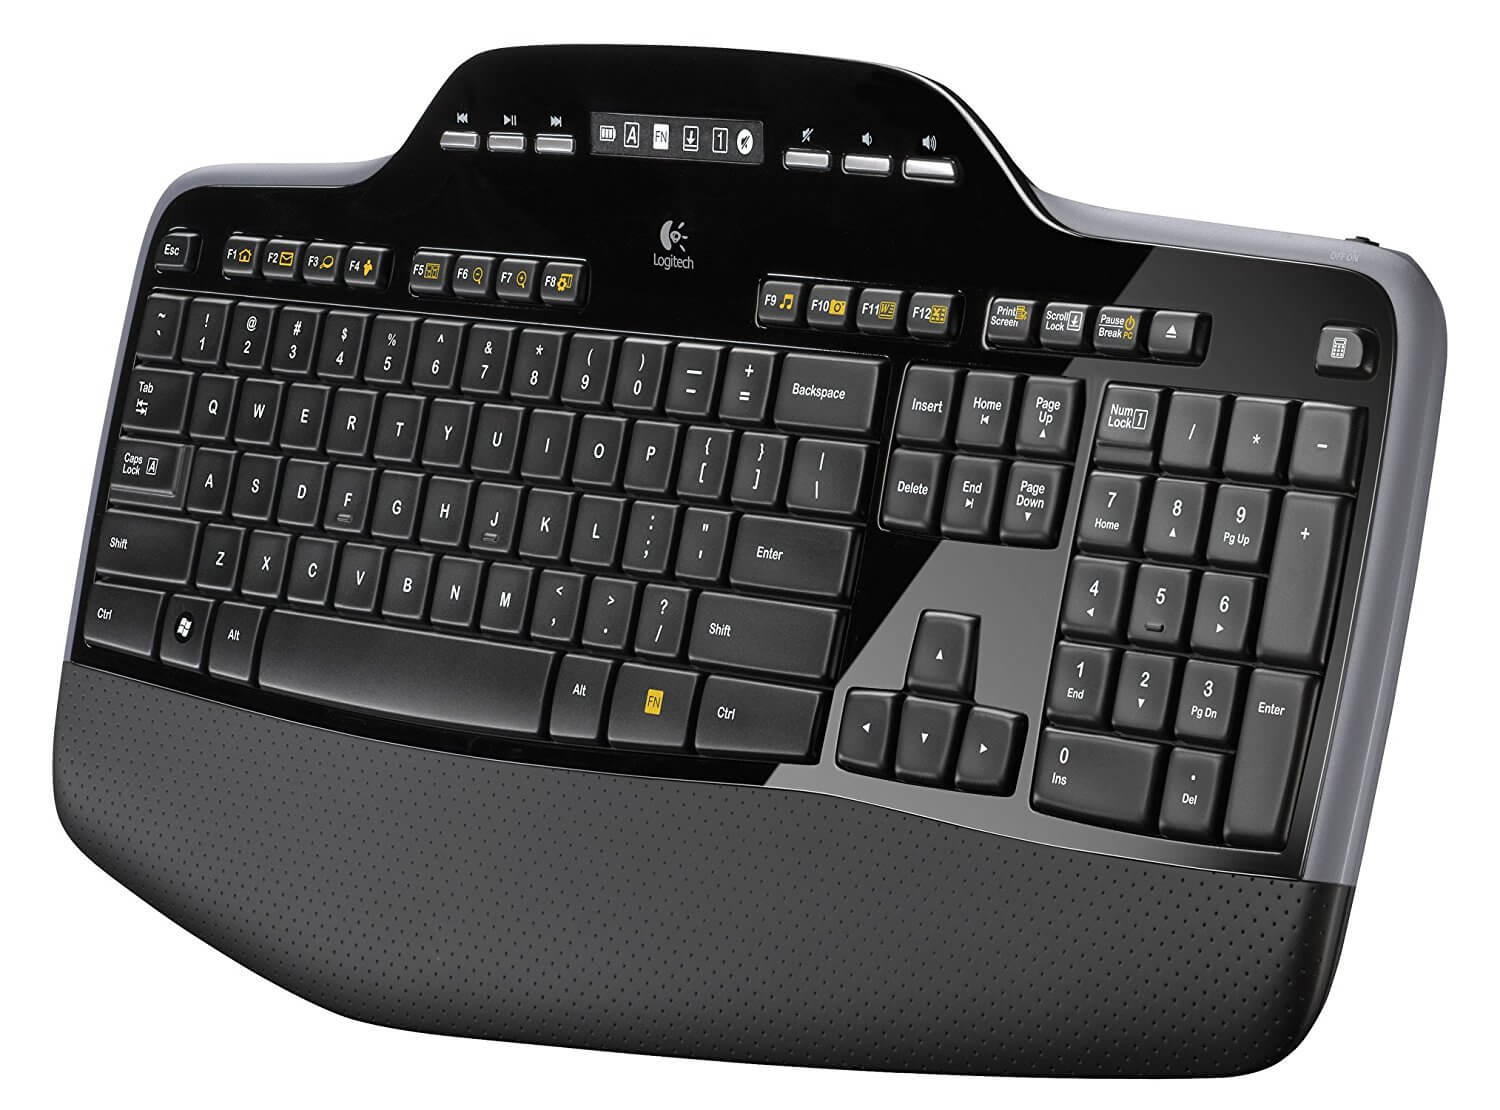 2f47e677bc4 Logitech MK710 Wireless Keyboard-Mouse Combo | Pacific Ergonomics